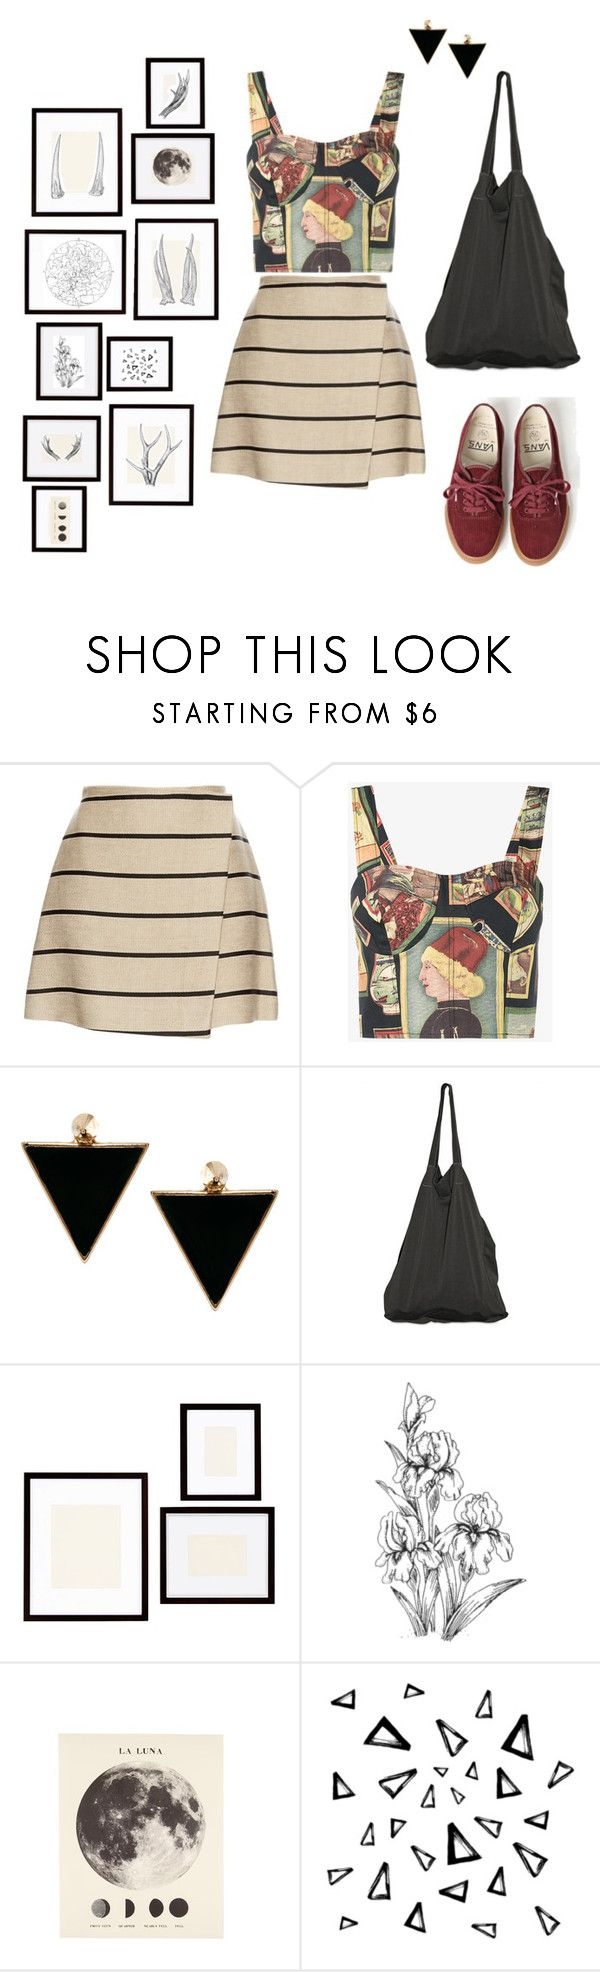 """Let's head to the art exhibitions!"" by entipuf ❤ liked on Polyvore featuring MSGM, Simon Miller, ASOS, Vans, Laneus, Pottery Barn and Nika"